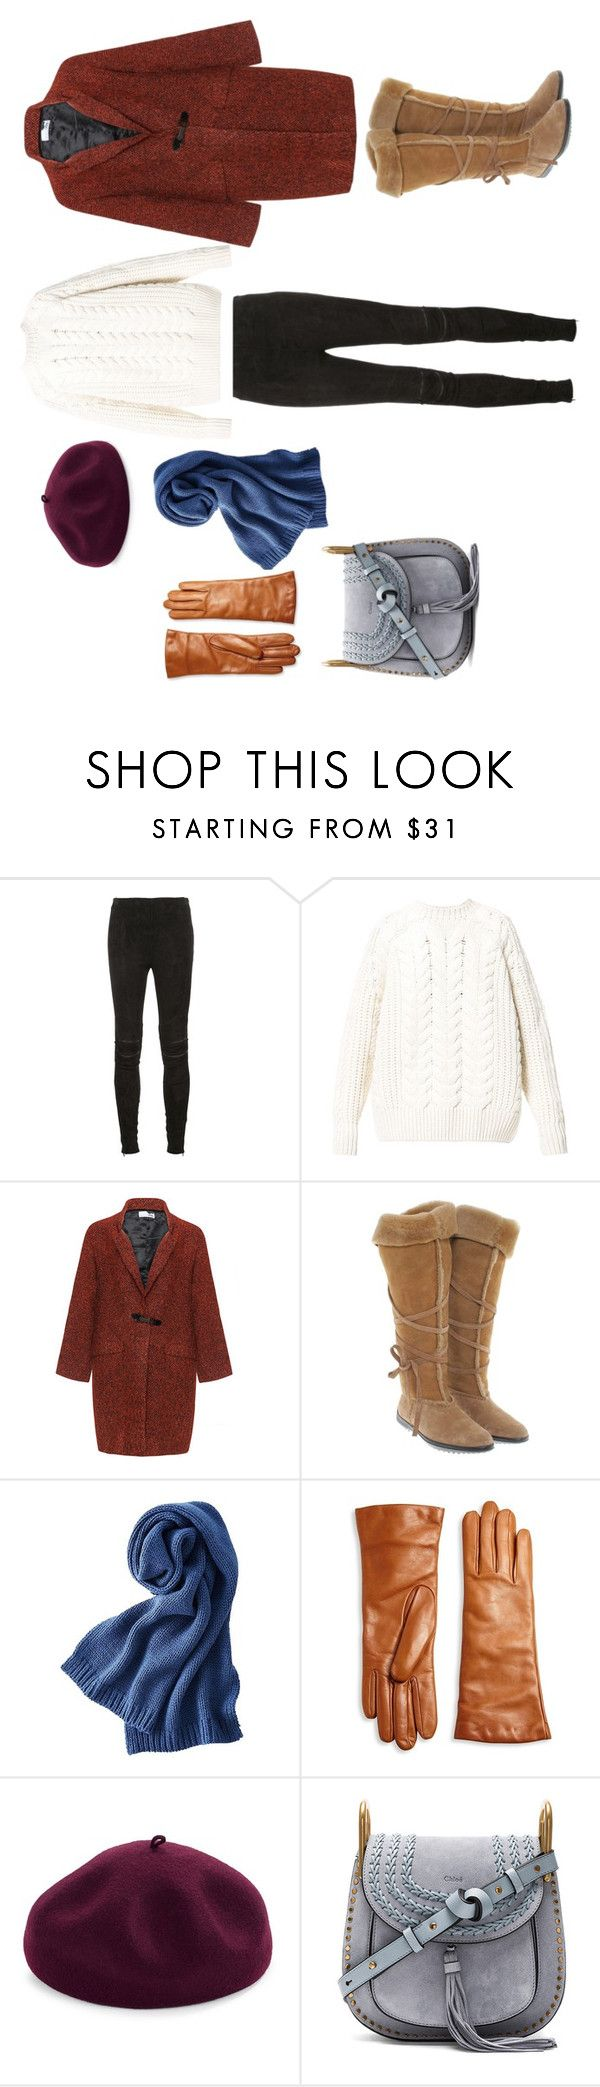 """#stay warm & be colorful"" by joe-khulan on Polyvore featuring Yves Saint Laurent, Diesel, Bohème, Tod's, Uniqlo, Saks Fifth Avenue Collection, Kathy Jeanne and Chloé"